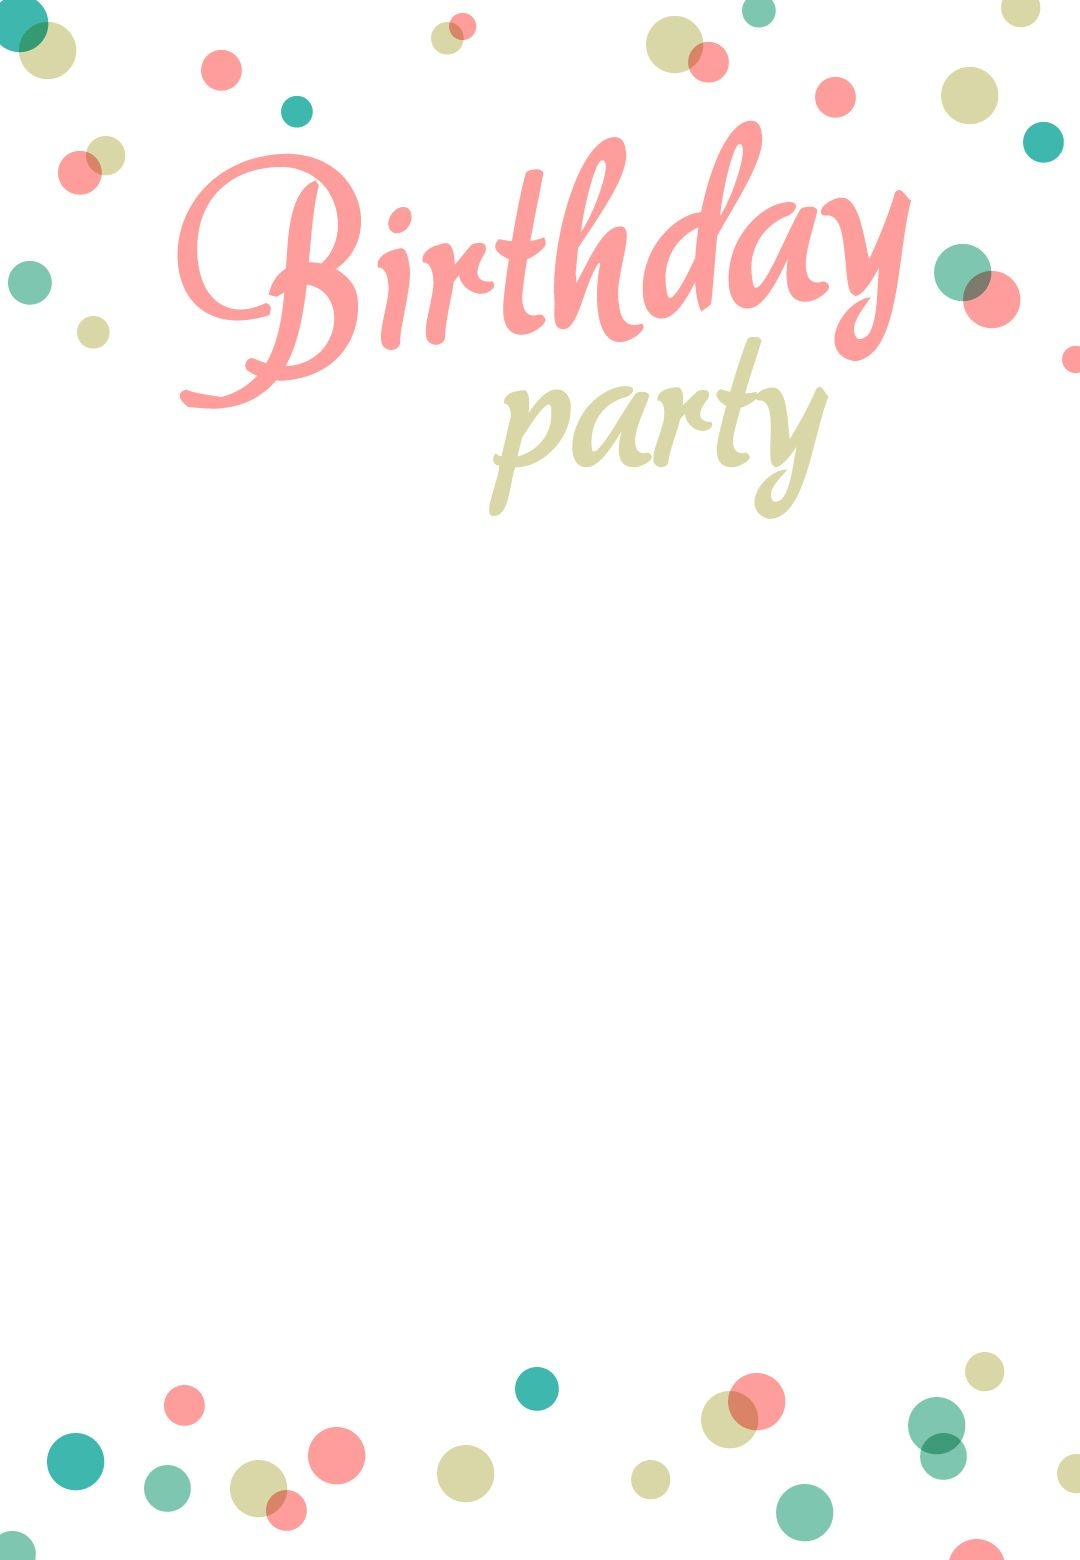 Birthday Party Dots - Free Printable Birthday Invitation Template - Customized Birthday Cards Free Printable